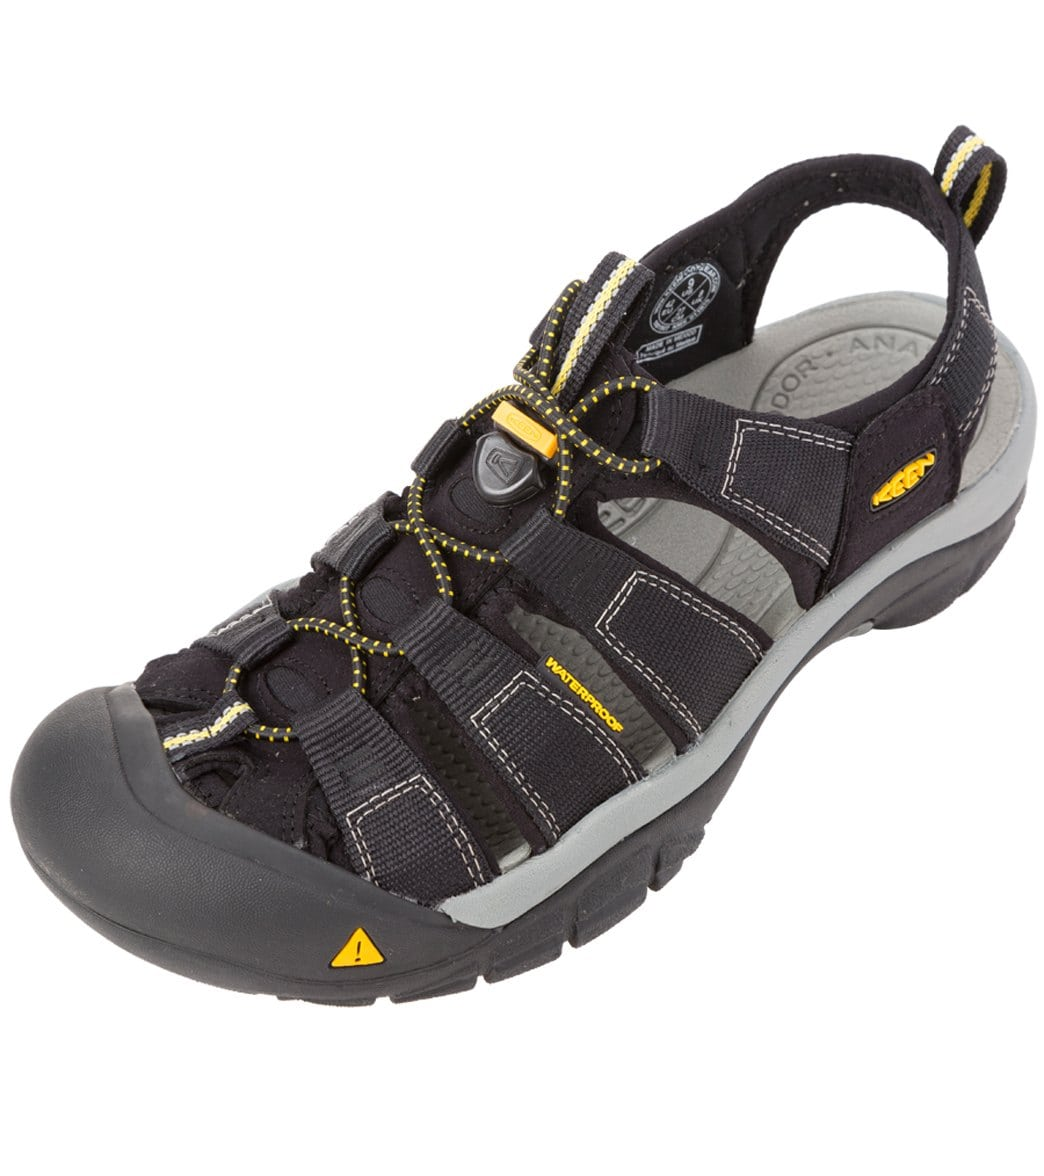 1e51ea8b193 Keen Men s Newport H2 Water Shoes at SwimOutlet.com - Free Shipping